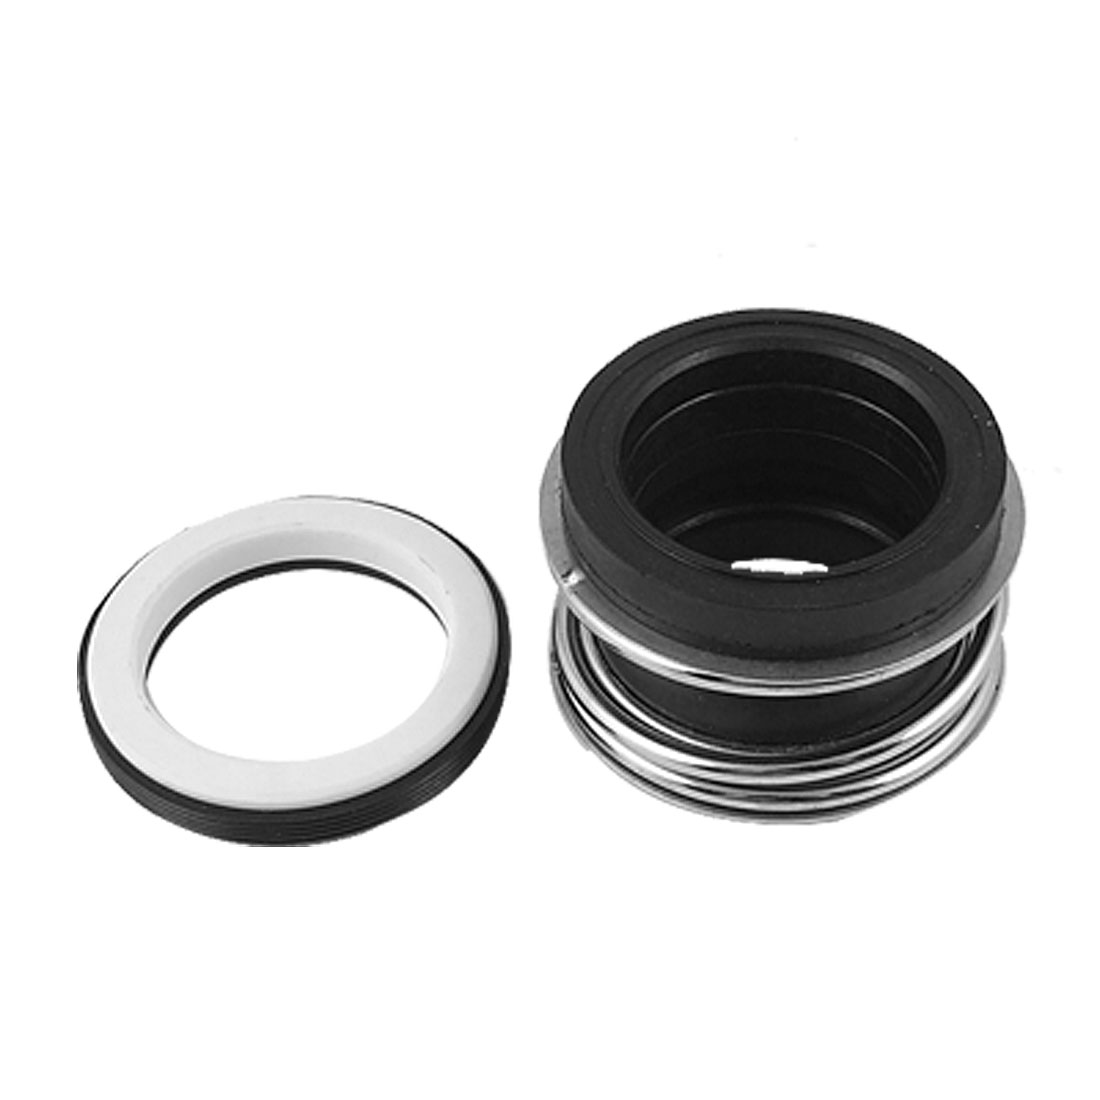 MB2-40 Rubber Bellows 41.3mm Coil Spring Mechanical Seal